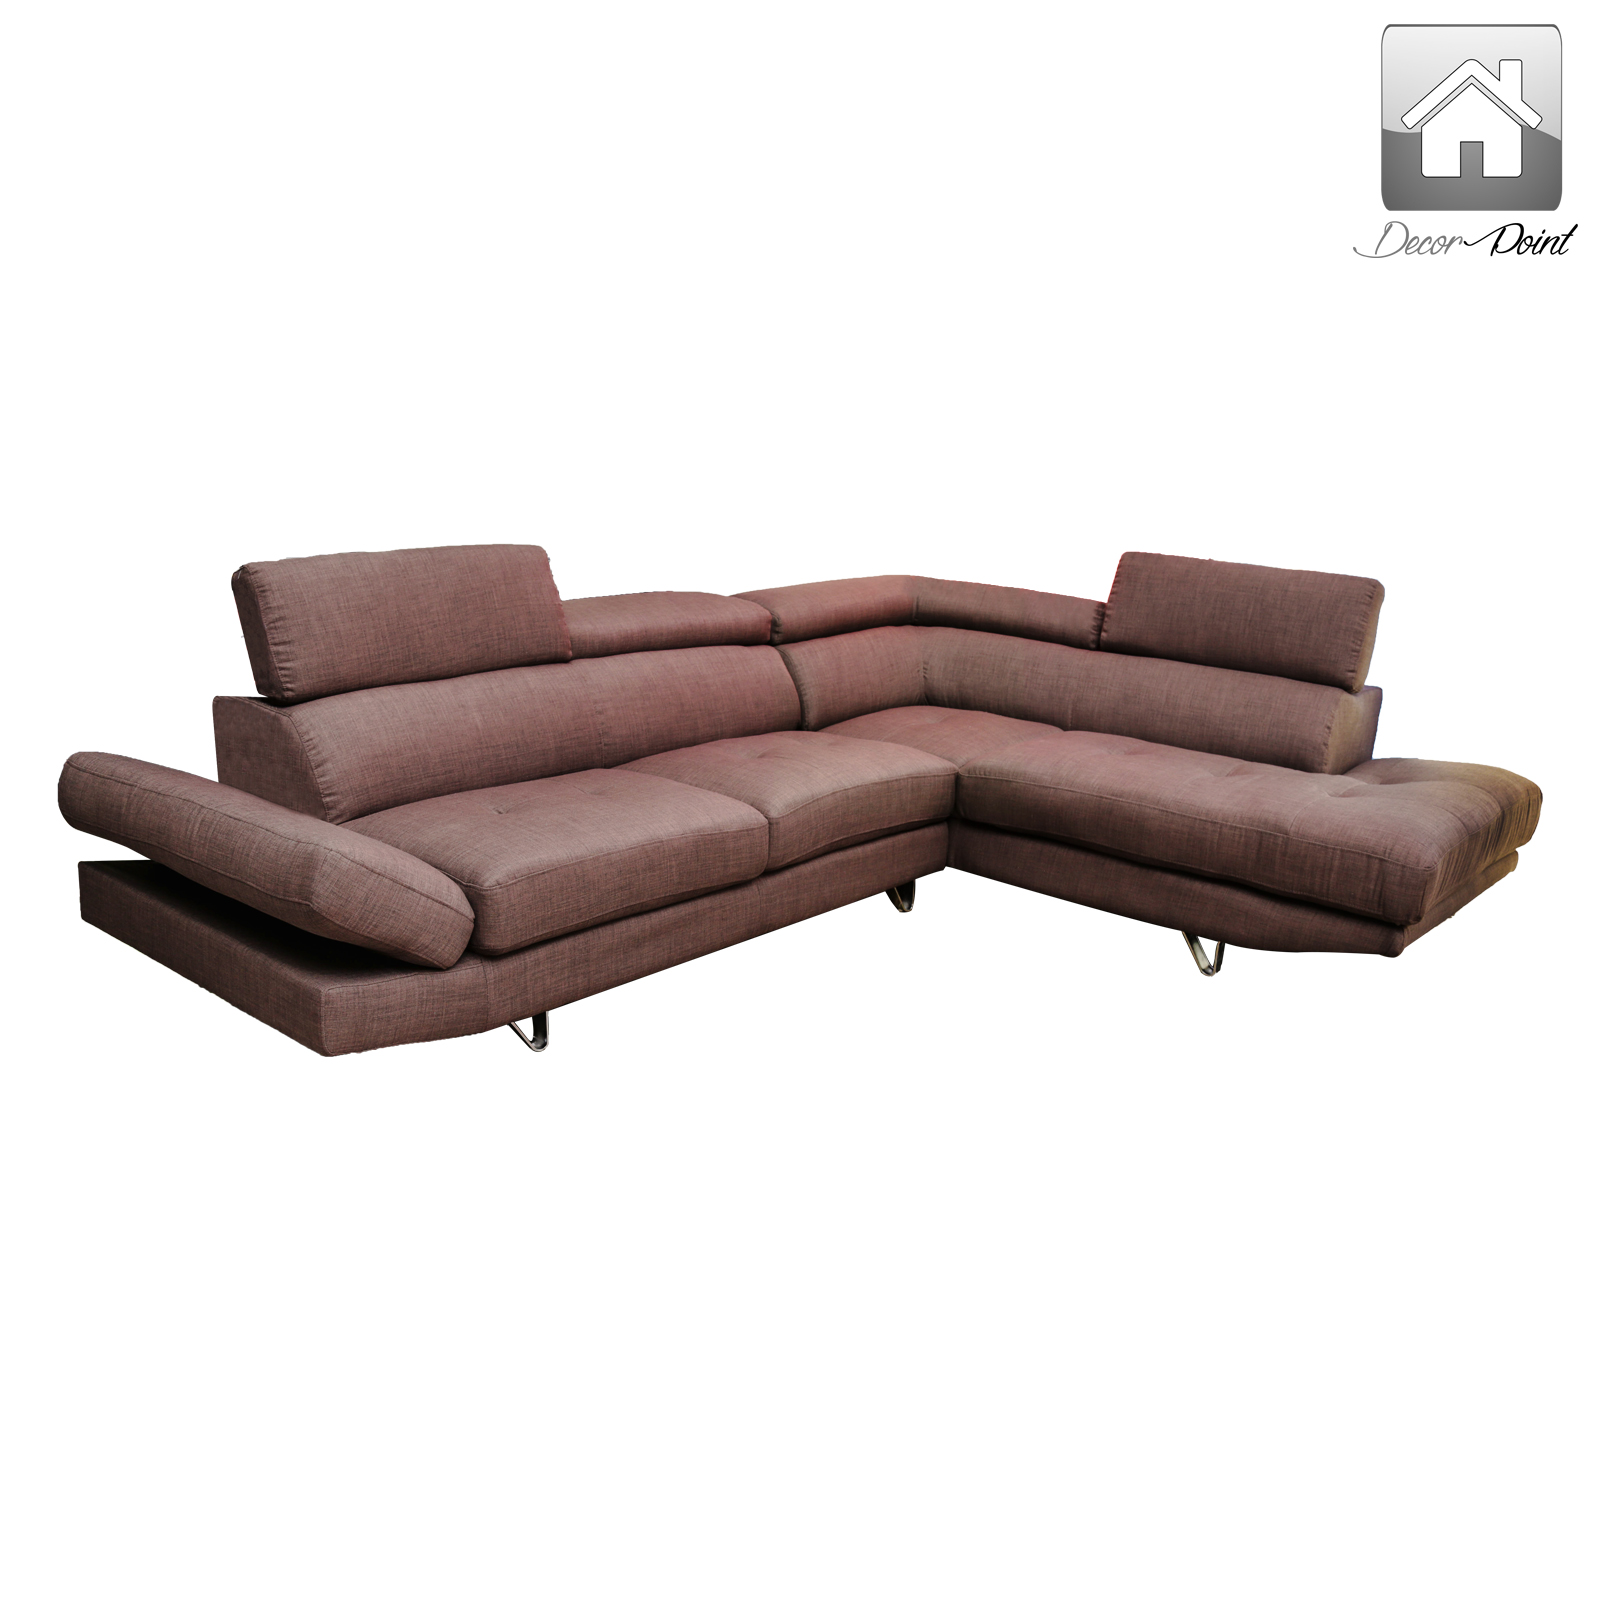 New Luxury Arizona Fabric Corner Sofa Set with Right Arm Chaise facing Brown